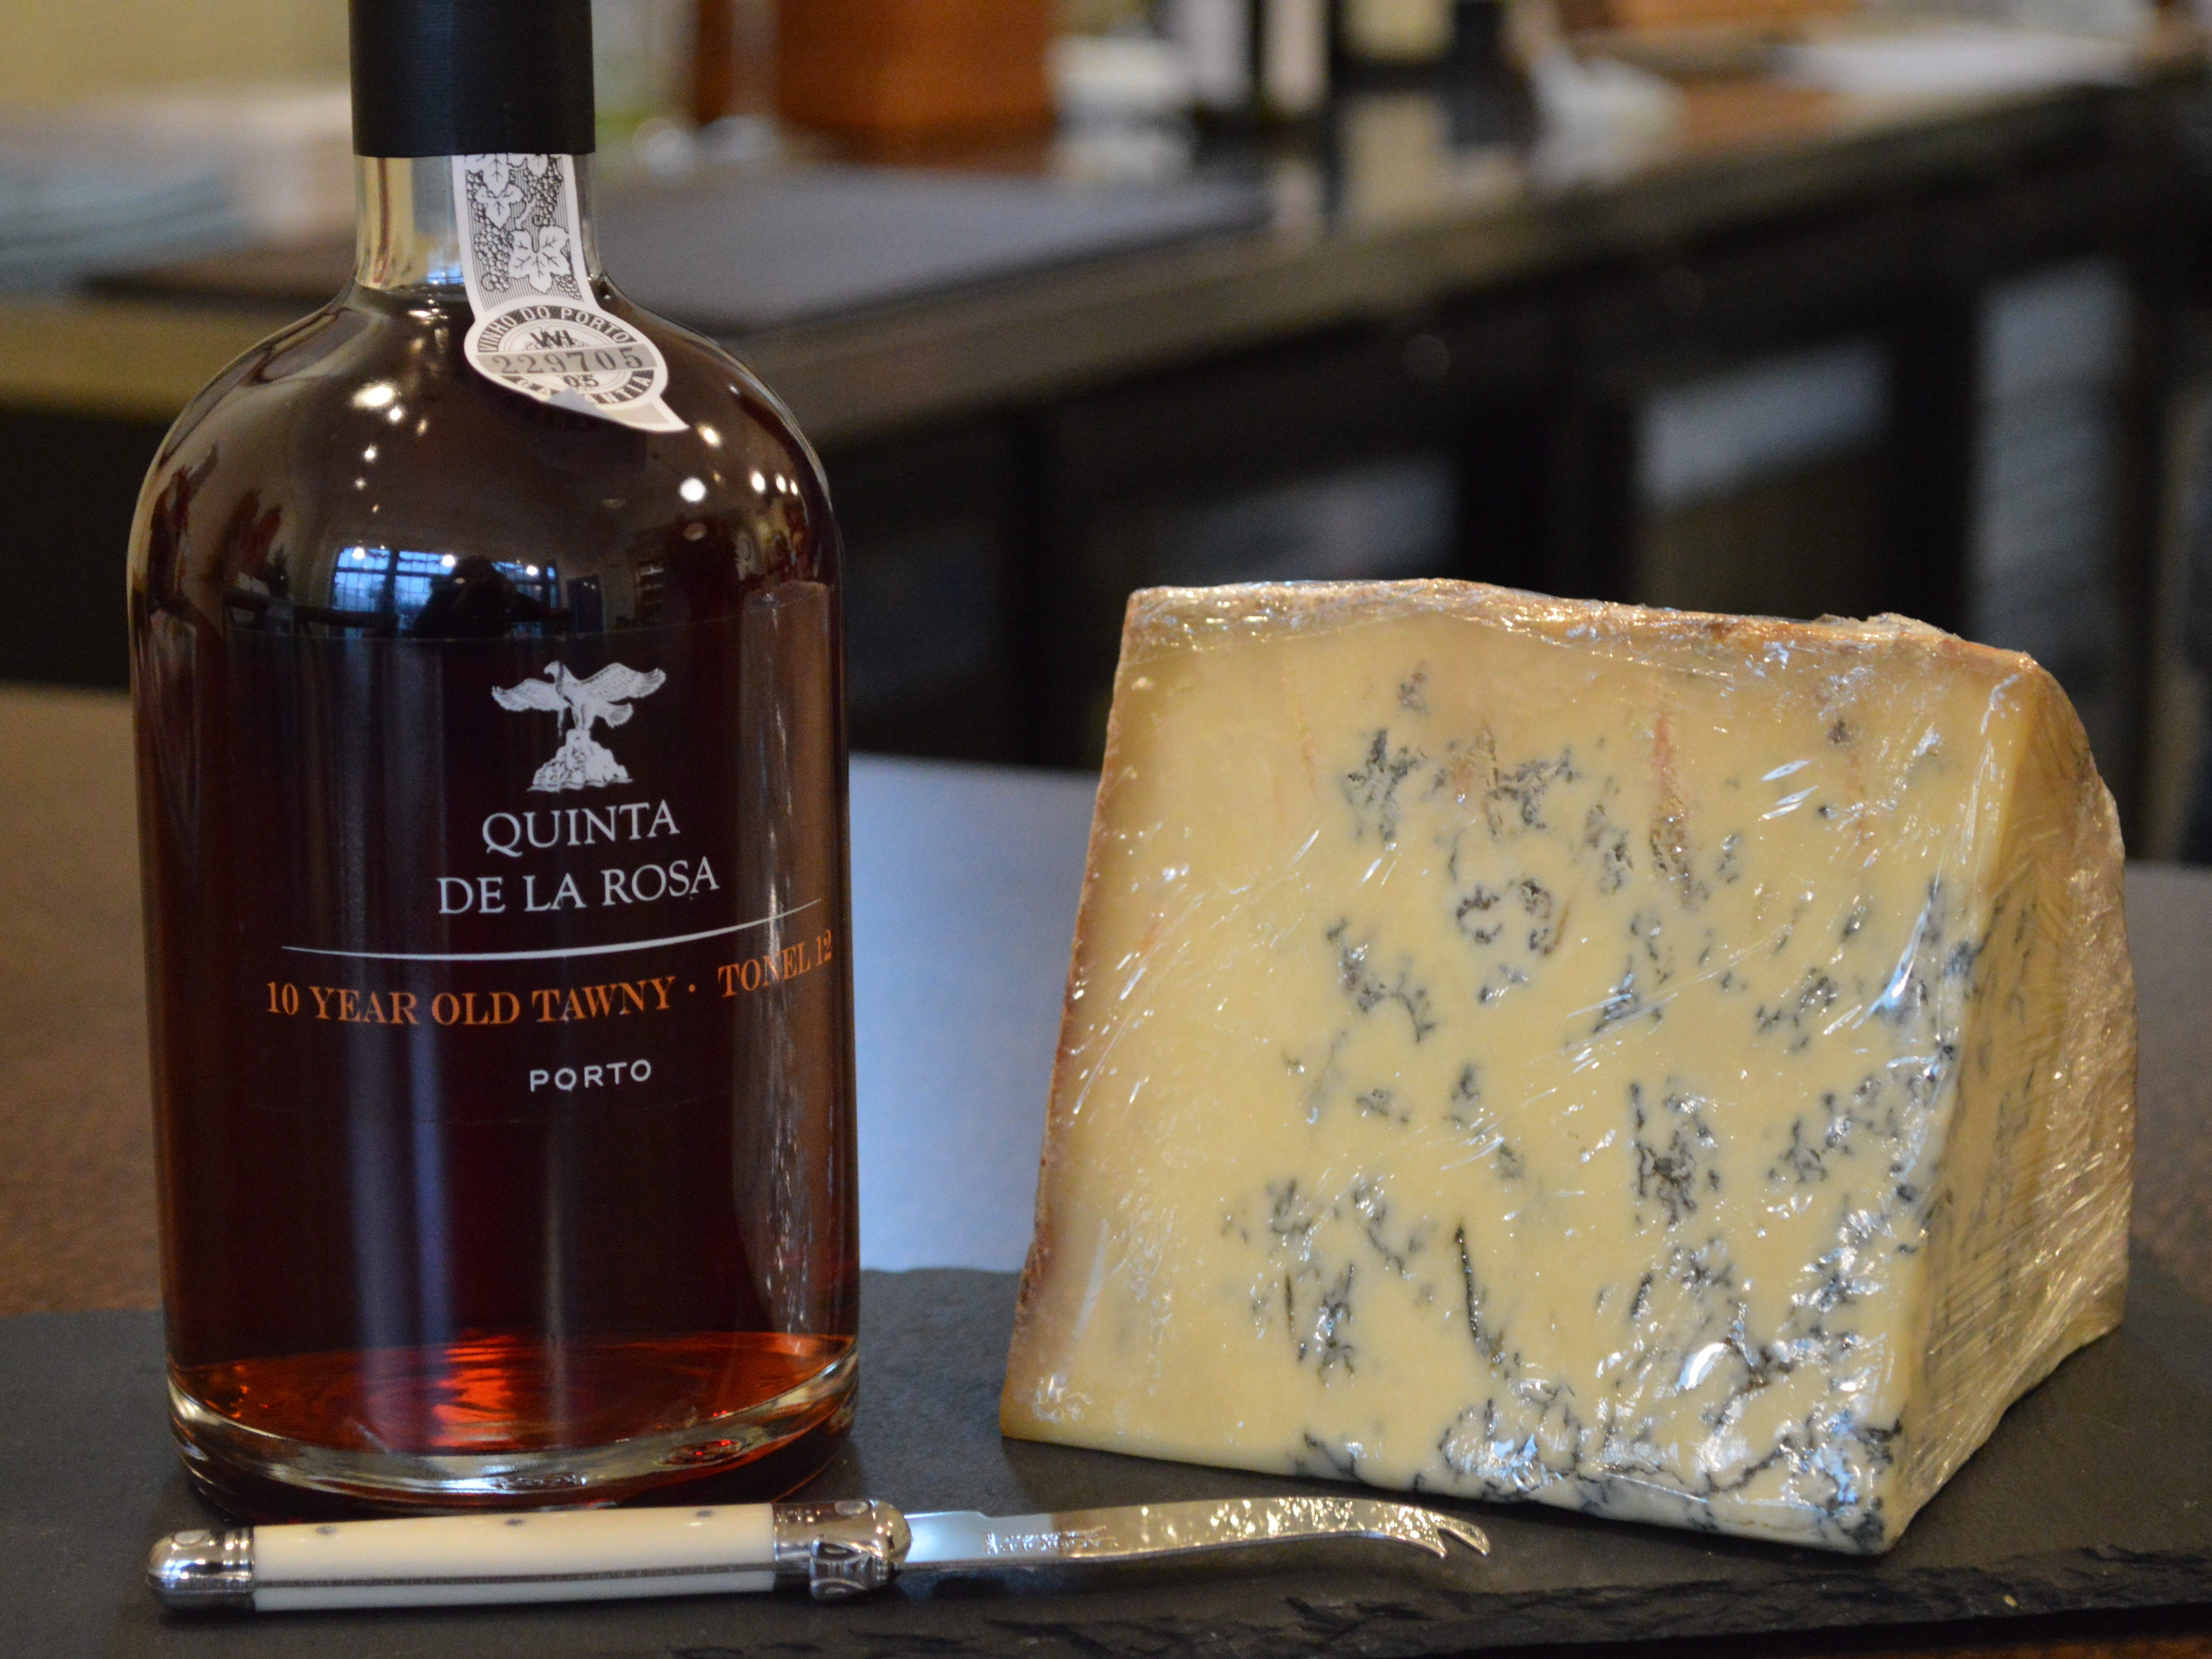 Magyar said a classic pairing would beColston Bassett Stilton blue cheese with a Tawny port wine.